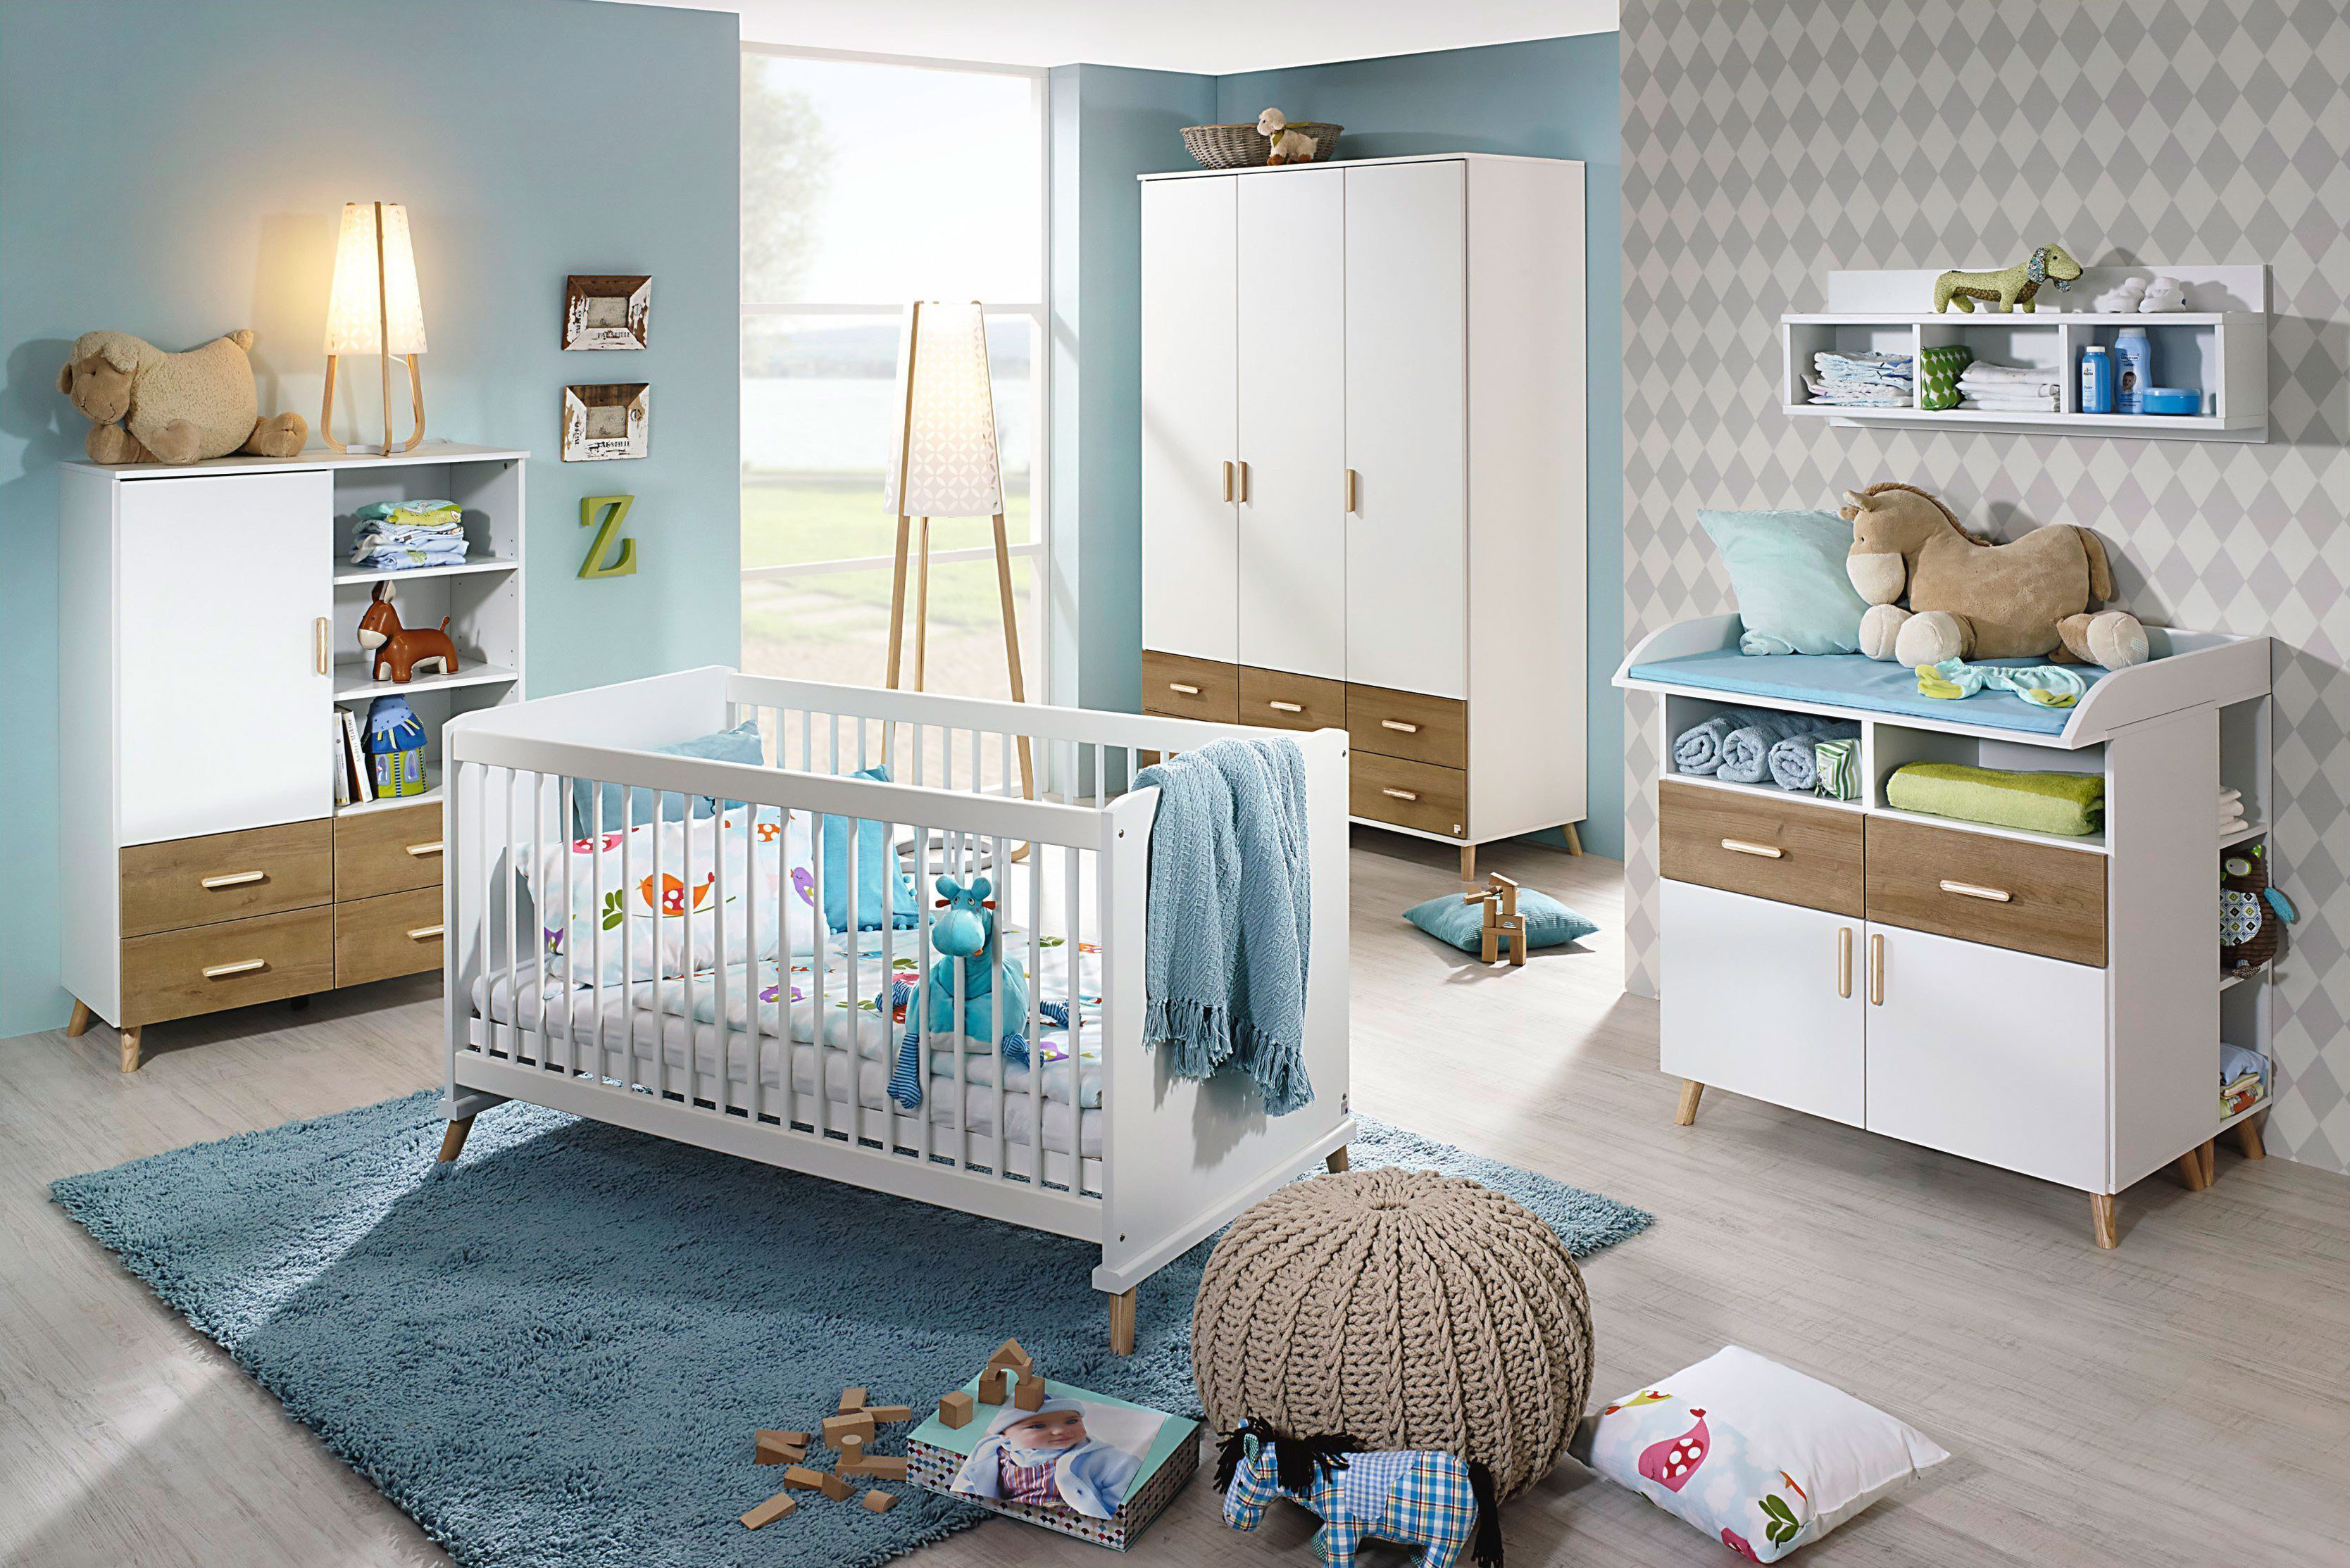 babyzimmer sonoma eiche awesome ukommode with babyzimmer sonoma eiche excellent babyzimmer. Black Bedroom Furniture Sets. Home Design Ideas